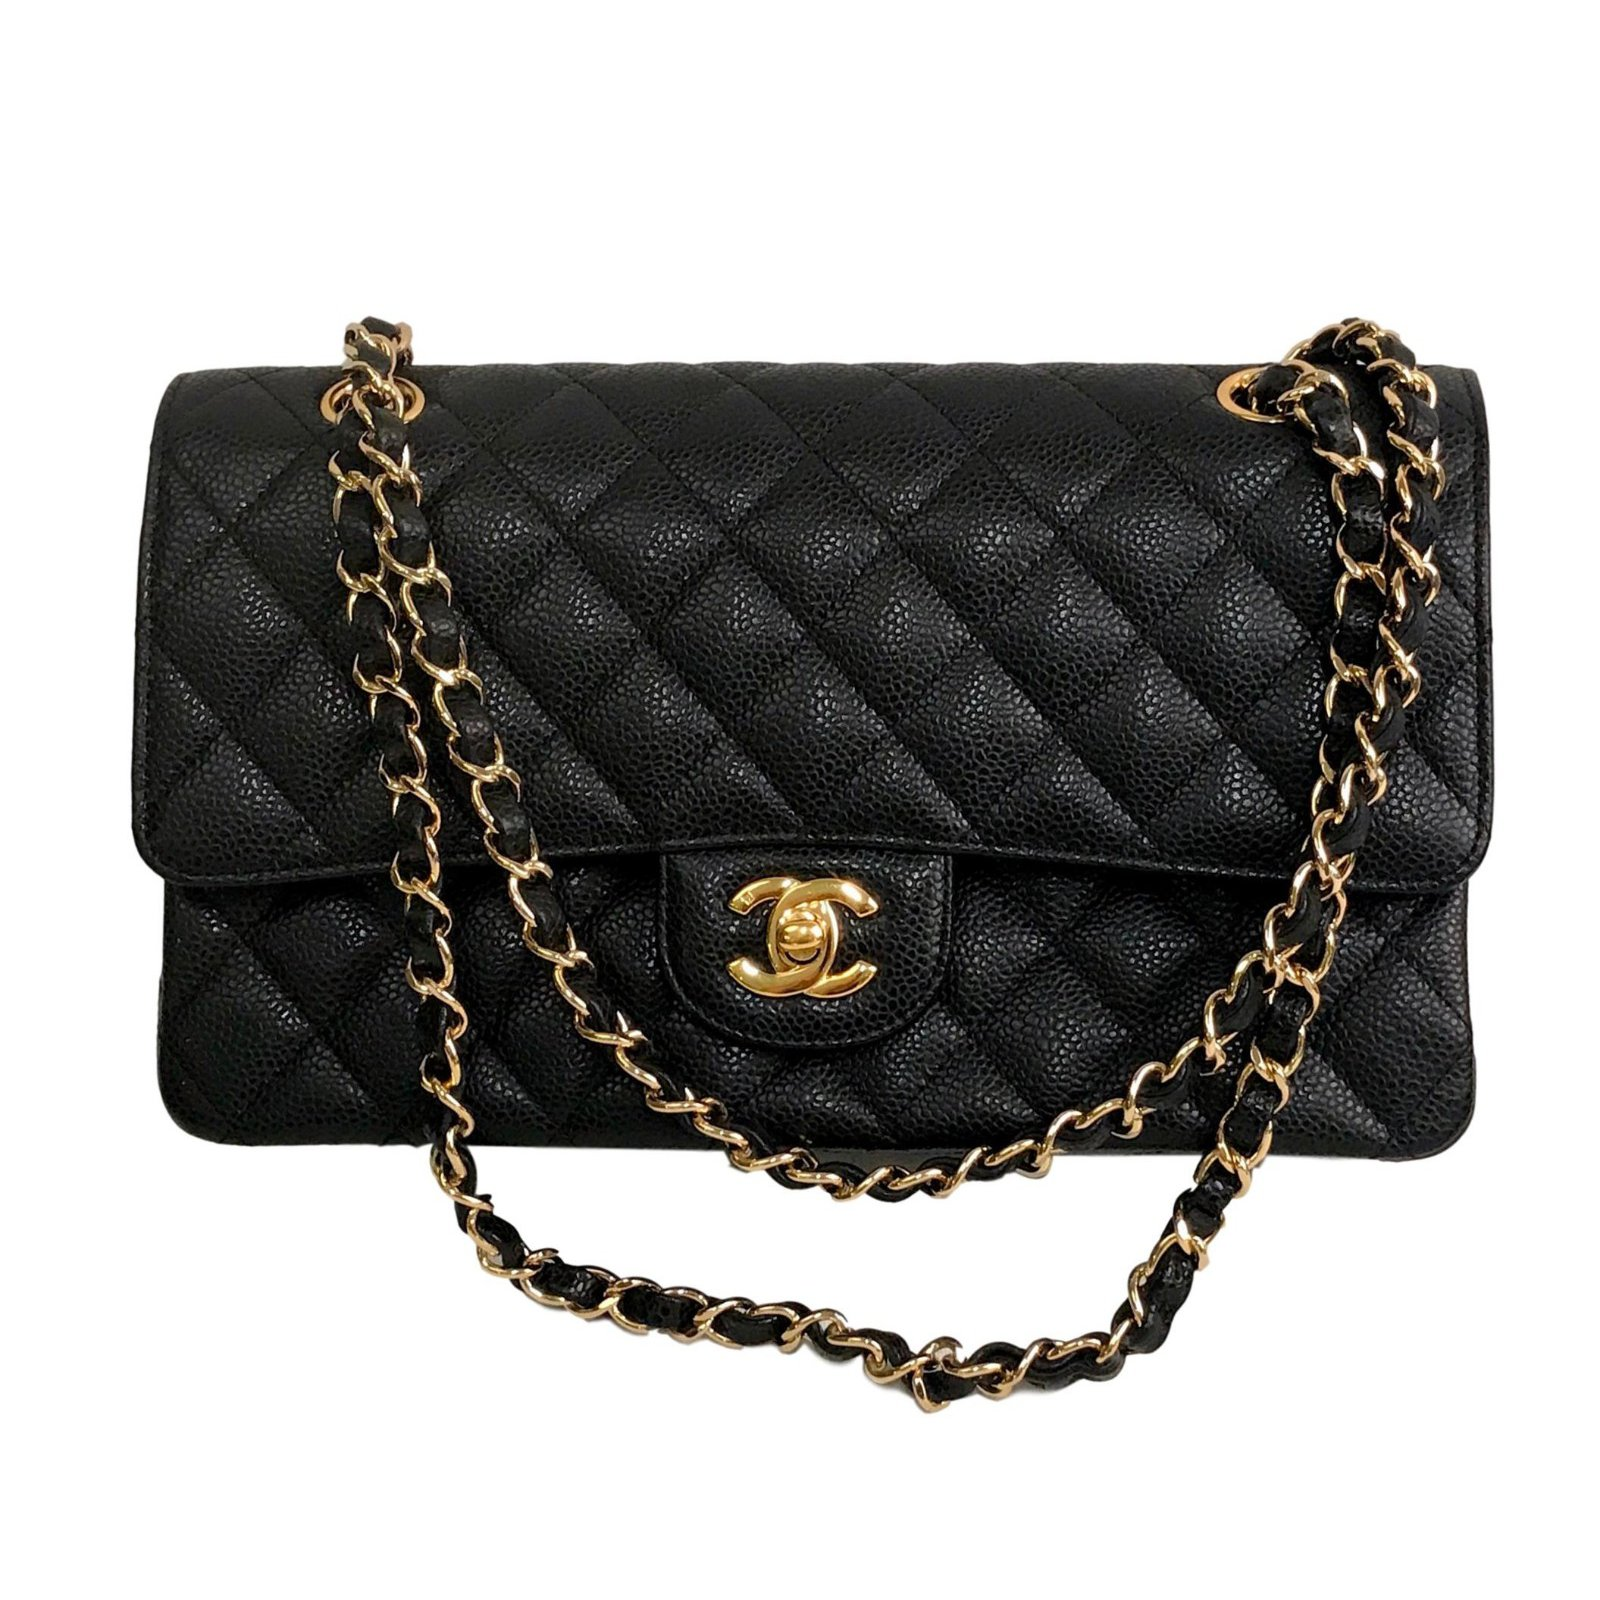 9ef6d2b65783 Chanel caviar lined flap medium bag Handbags Leather Black ref.76707 ...